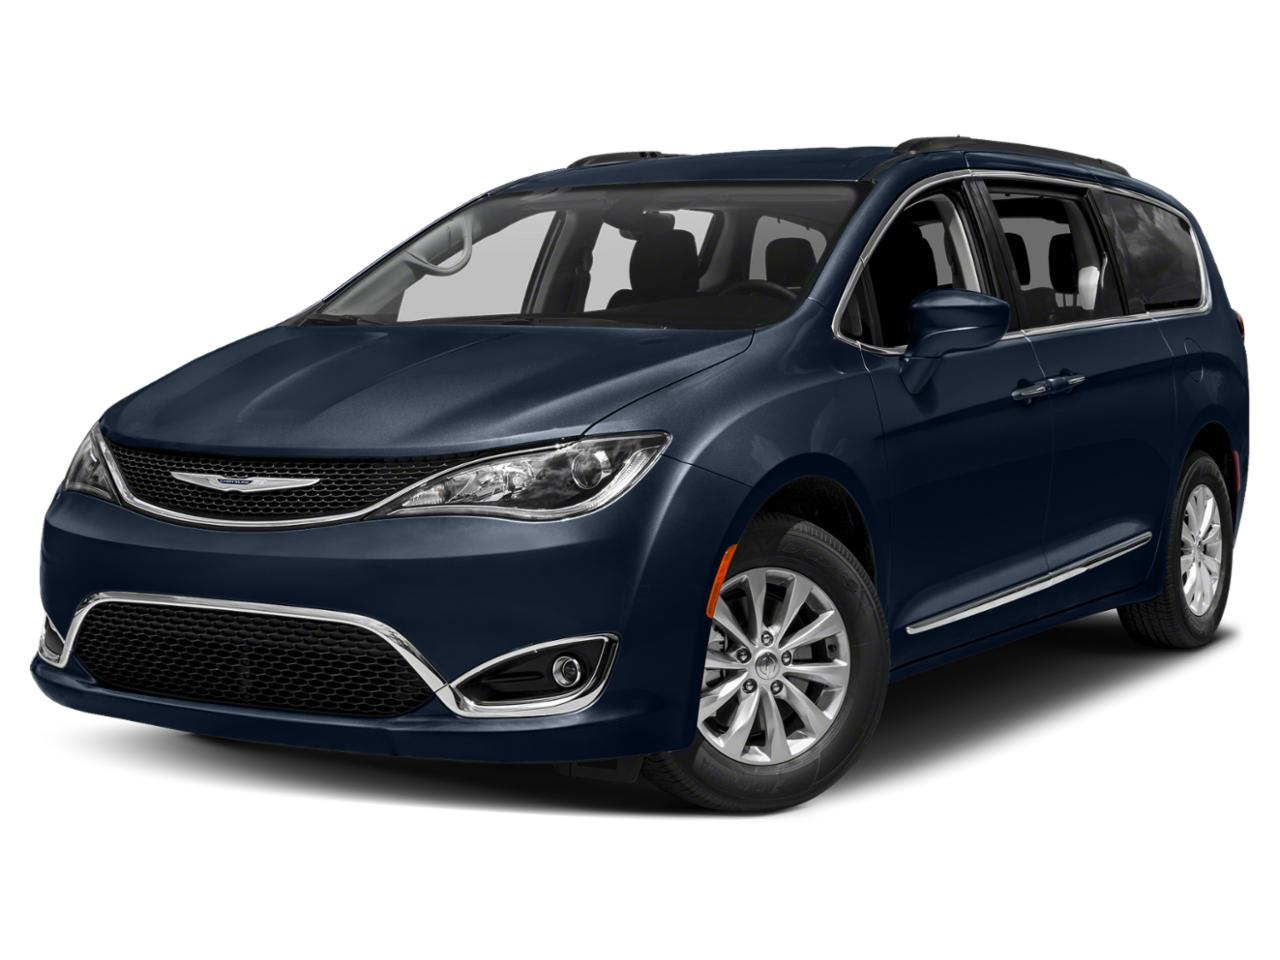 2018 Chrysler Pacifica Vehicle Photo in Appleton, WI 54914